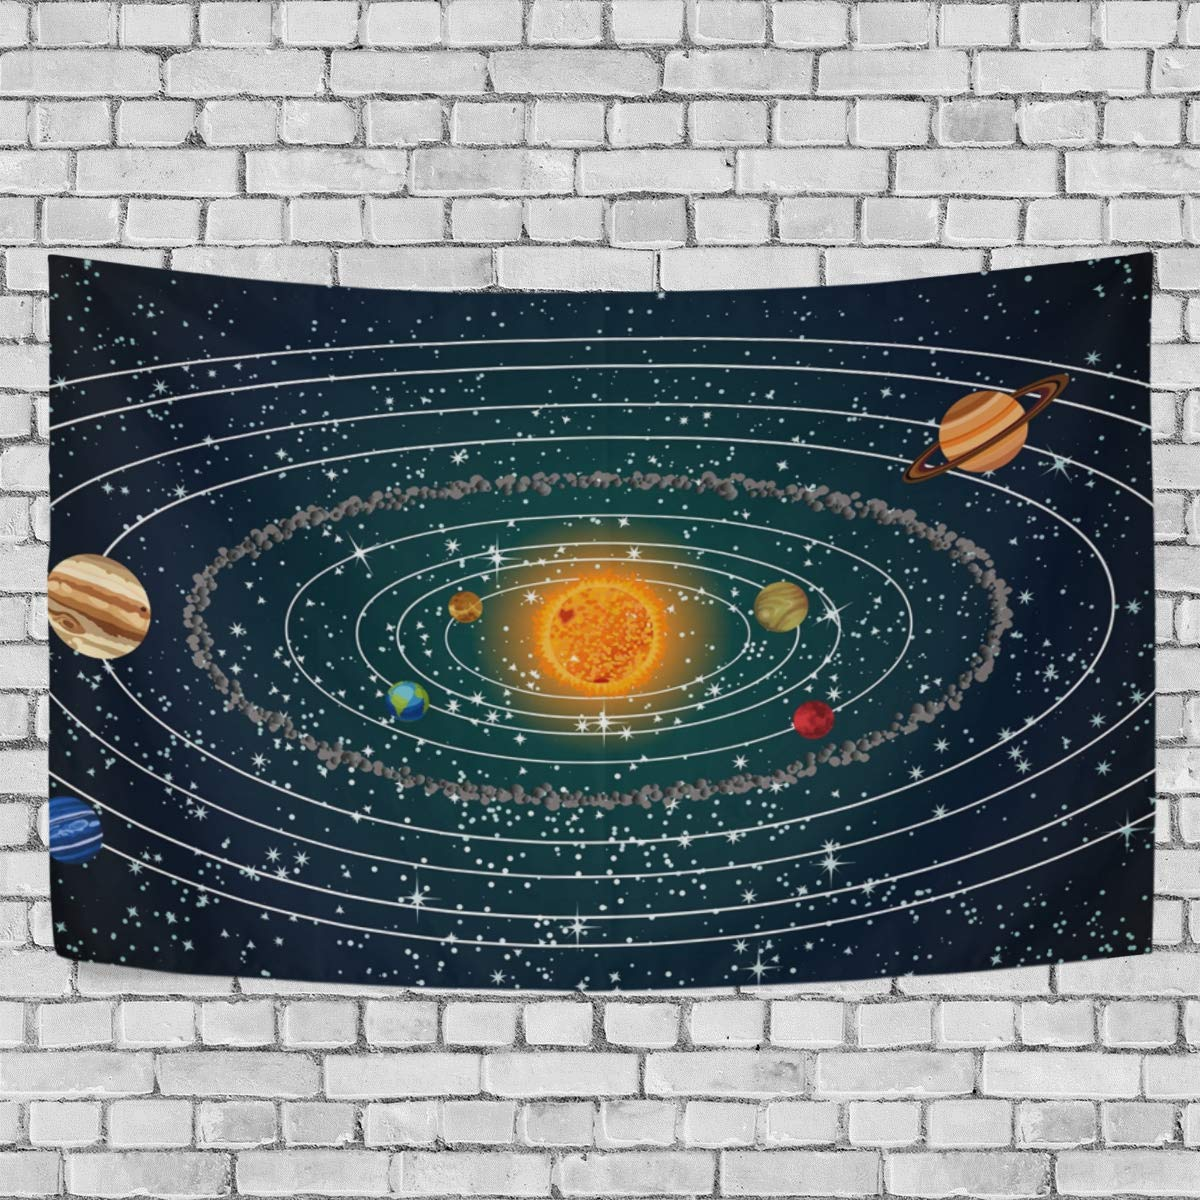 JSTEL Solar System Tapestry Wall Hanging Decoration for Apartment Home Decor Living Room Table Throw Bedspread Dorm 60x51 inches